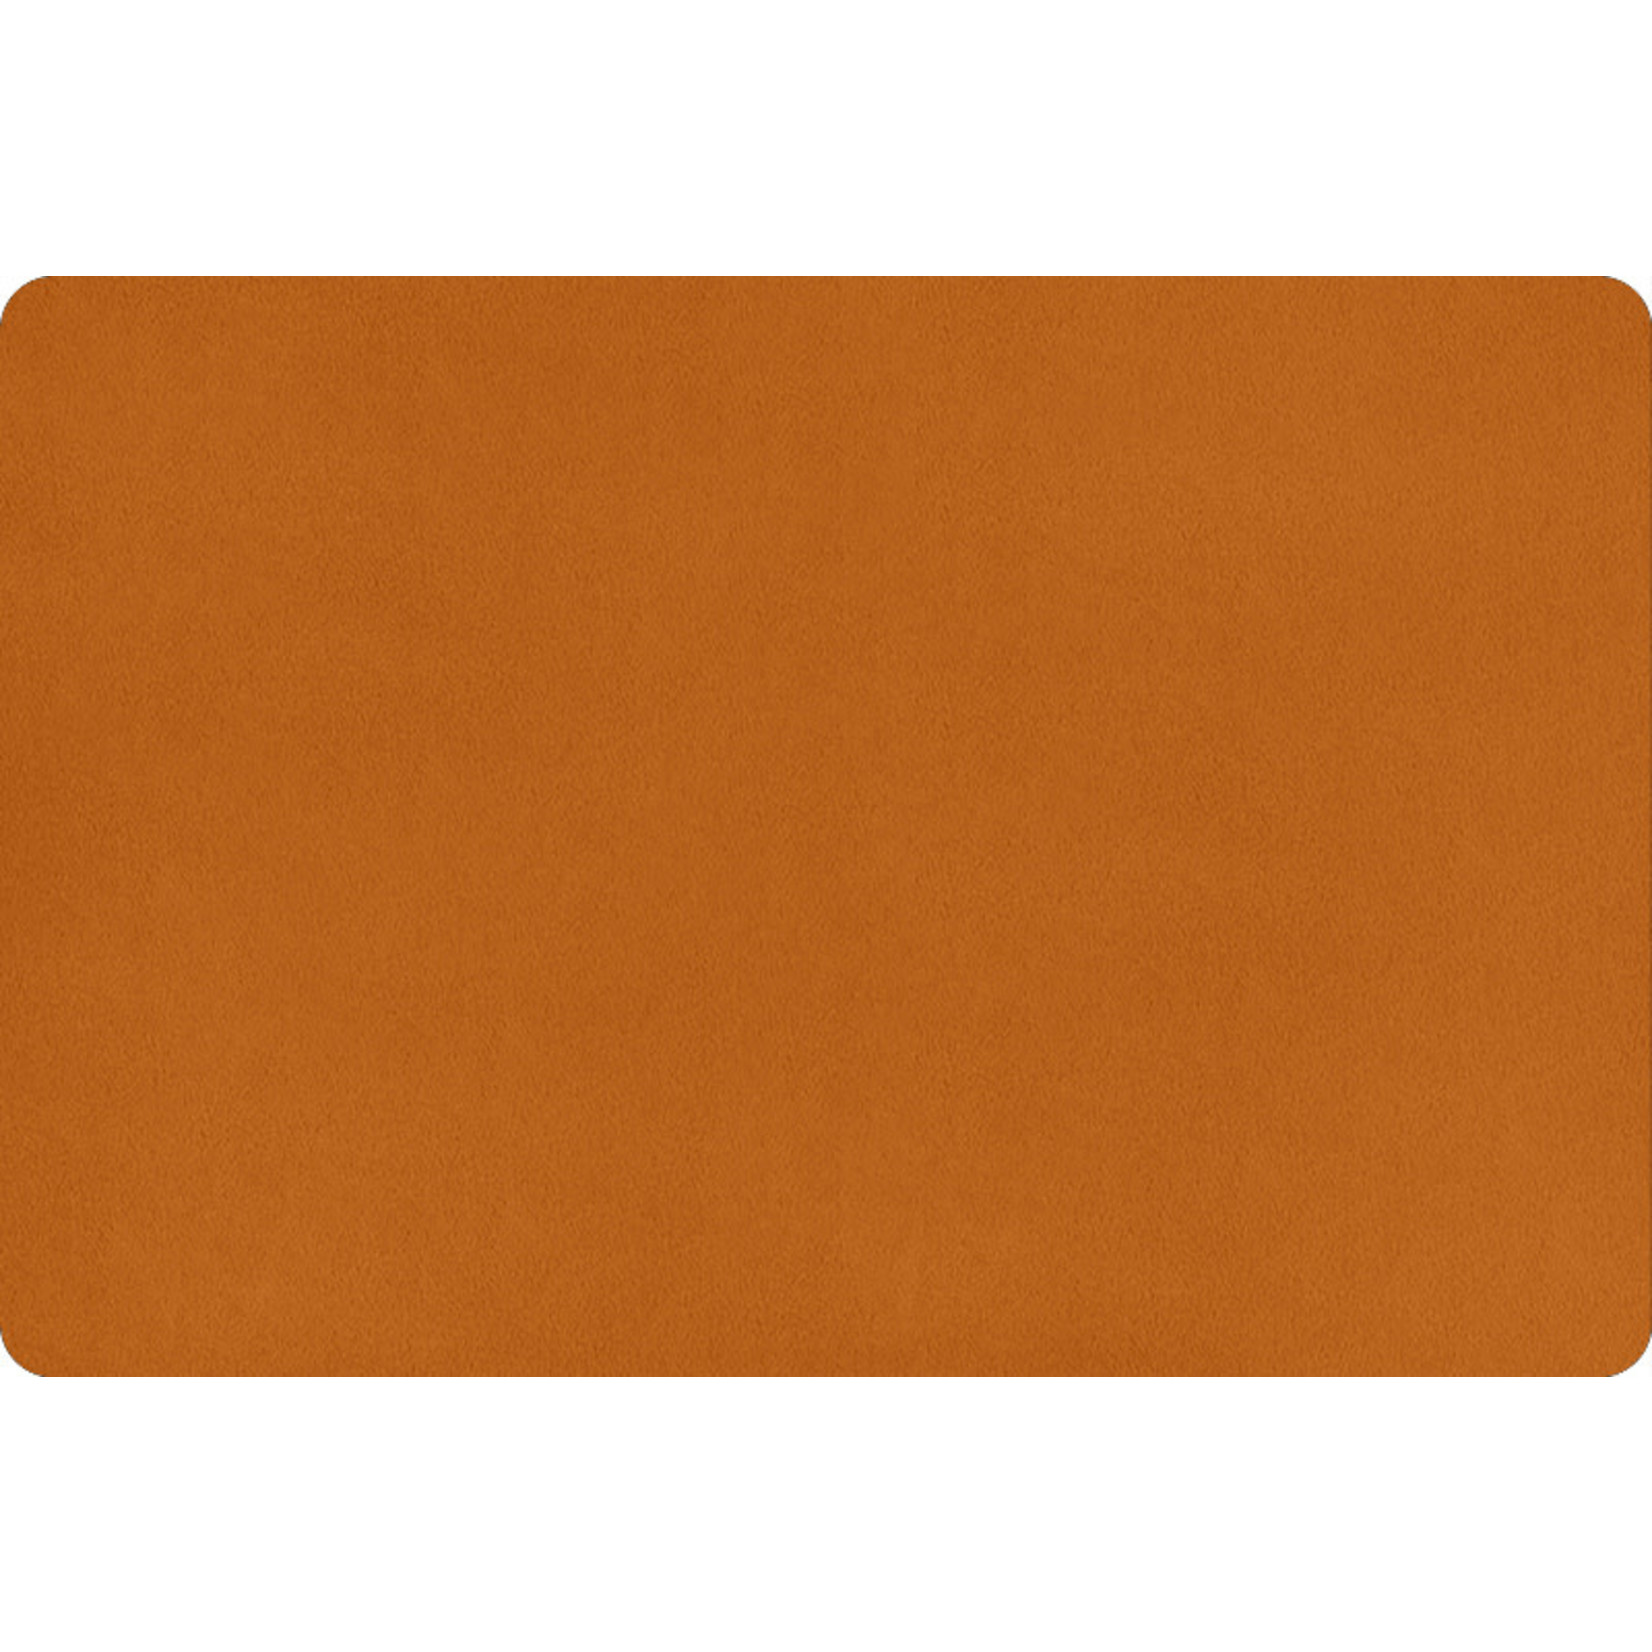 """Shannon Fabrics Minky, Extra Wide Solid Cuddle3, 90"""" Ginger, (by the inch)"""